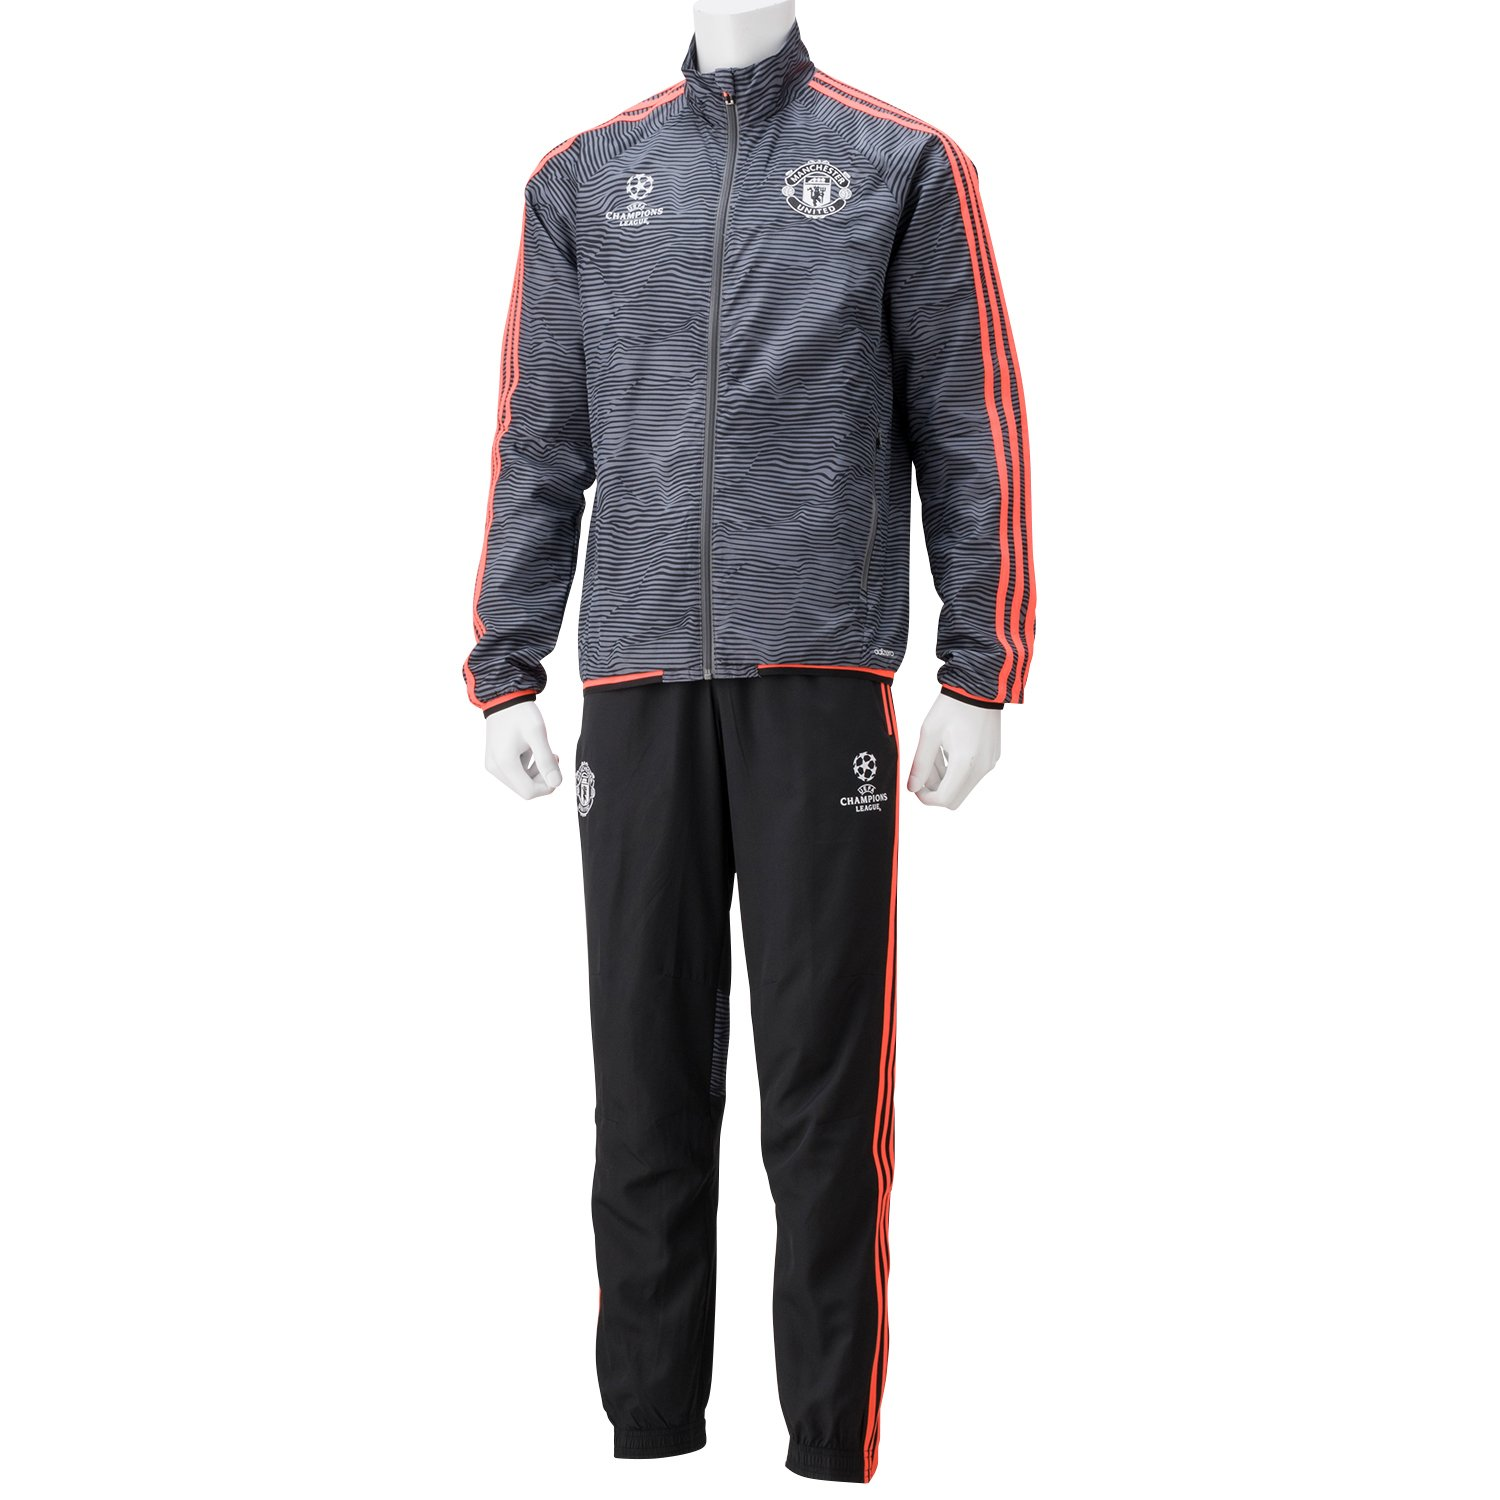 9272fb9c0c8 adidas Mens Training Suit UCL Presentation from Manchester United  Multi-Coloured Black Ash Solred Size XXX-Large  Amazon.co.uk  Sports    Outdoors